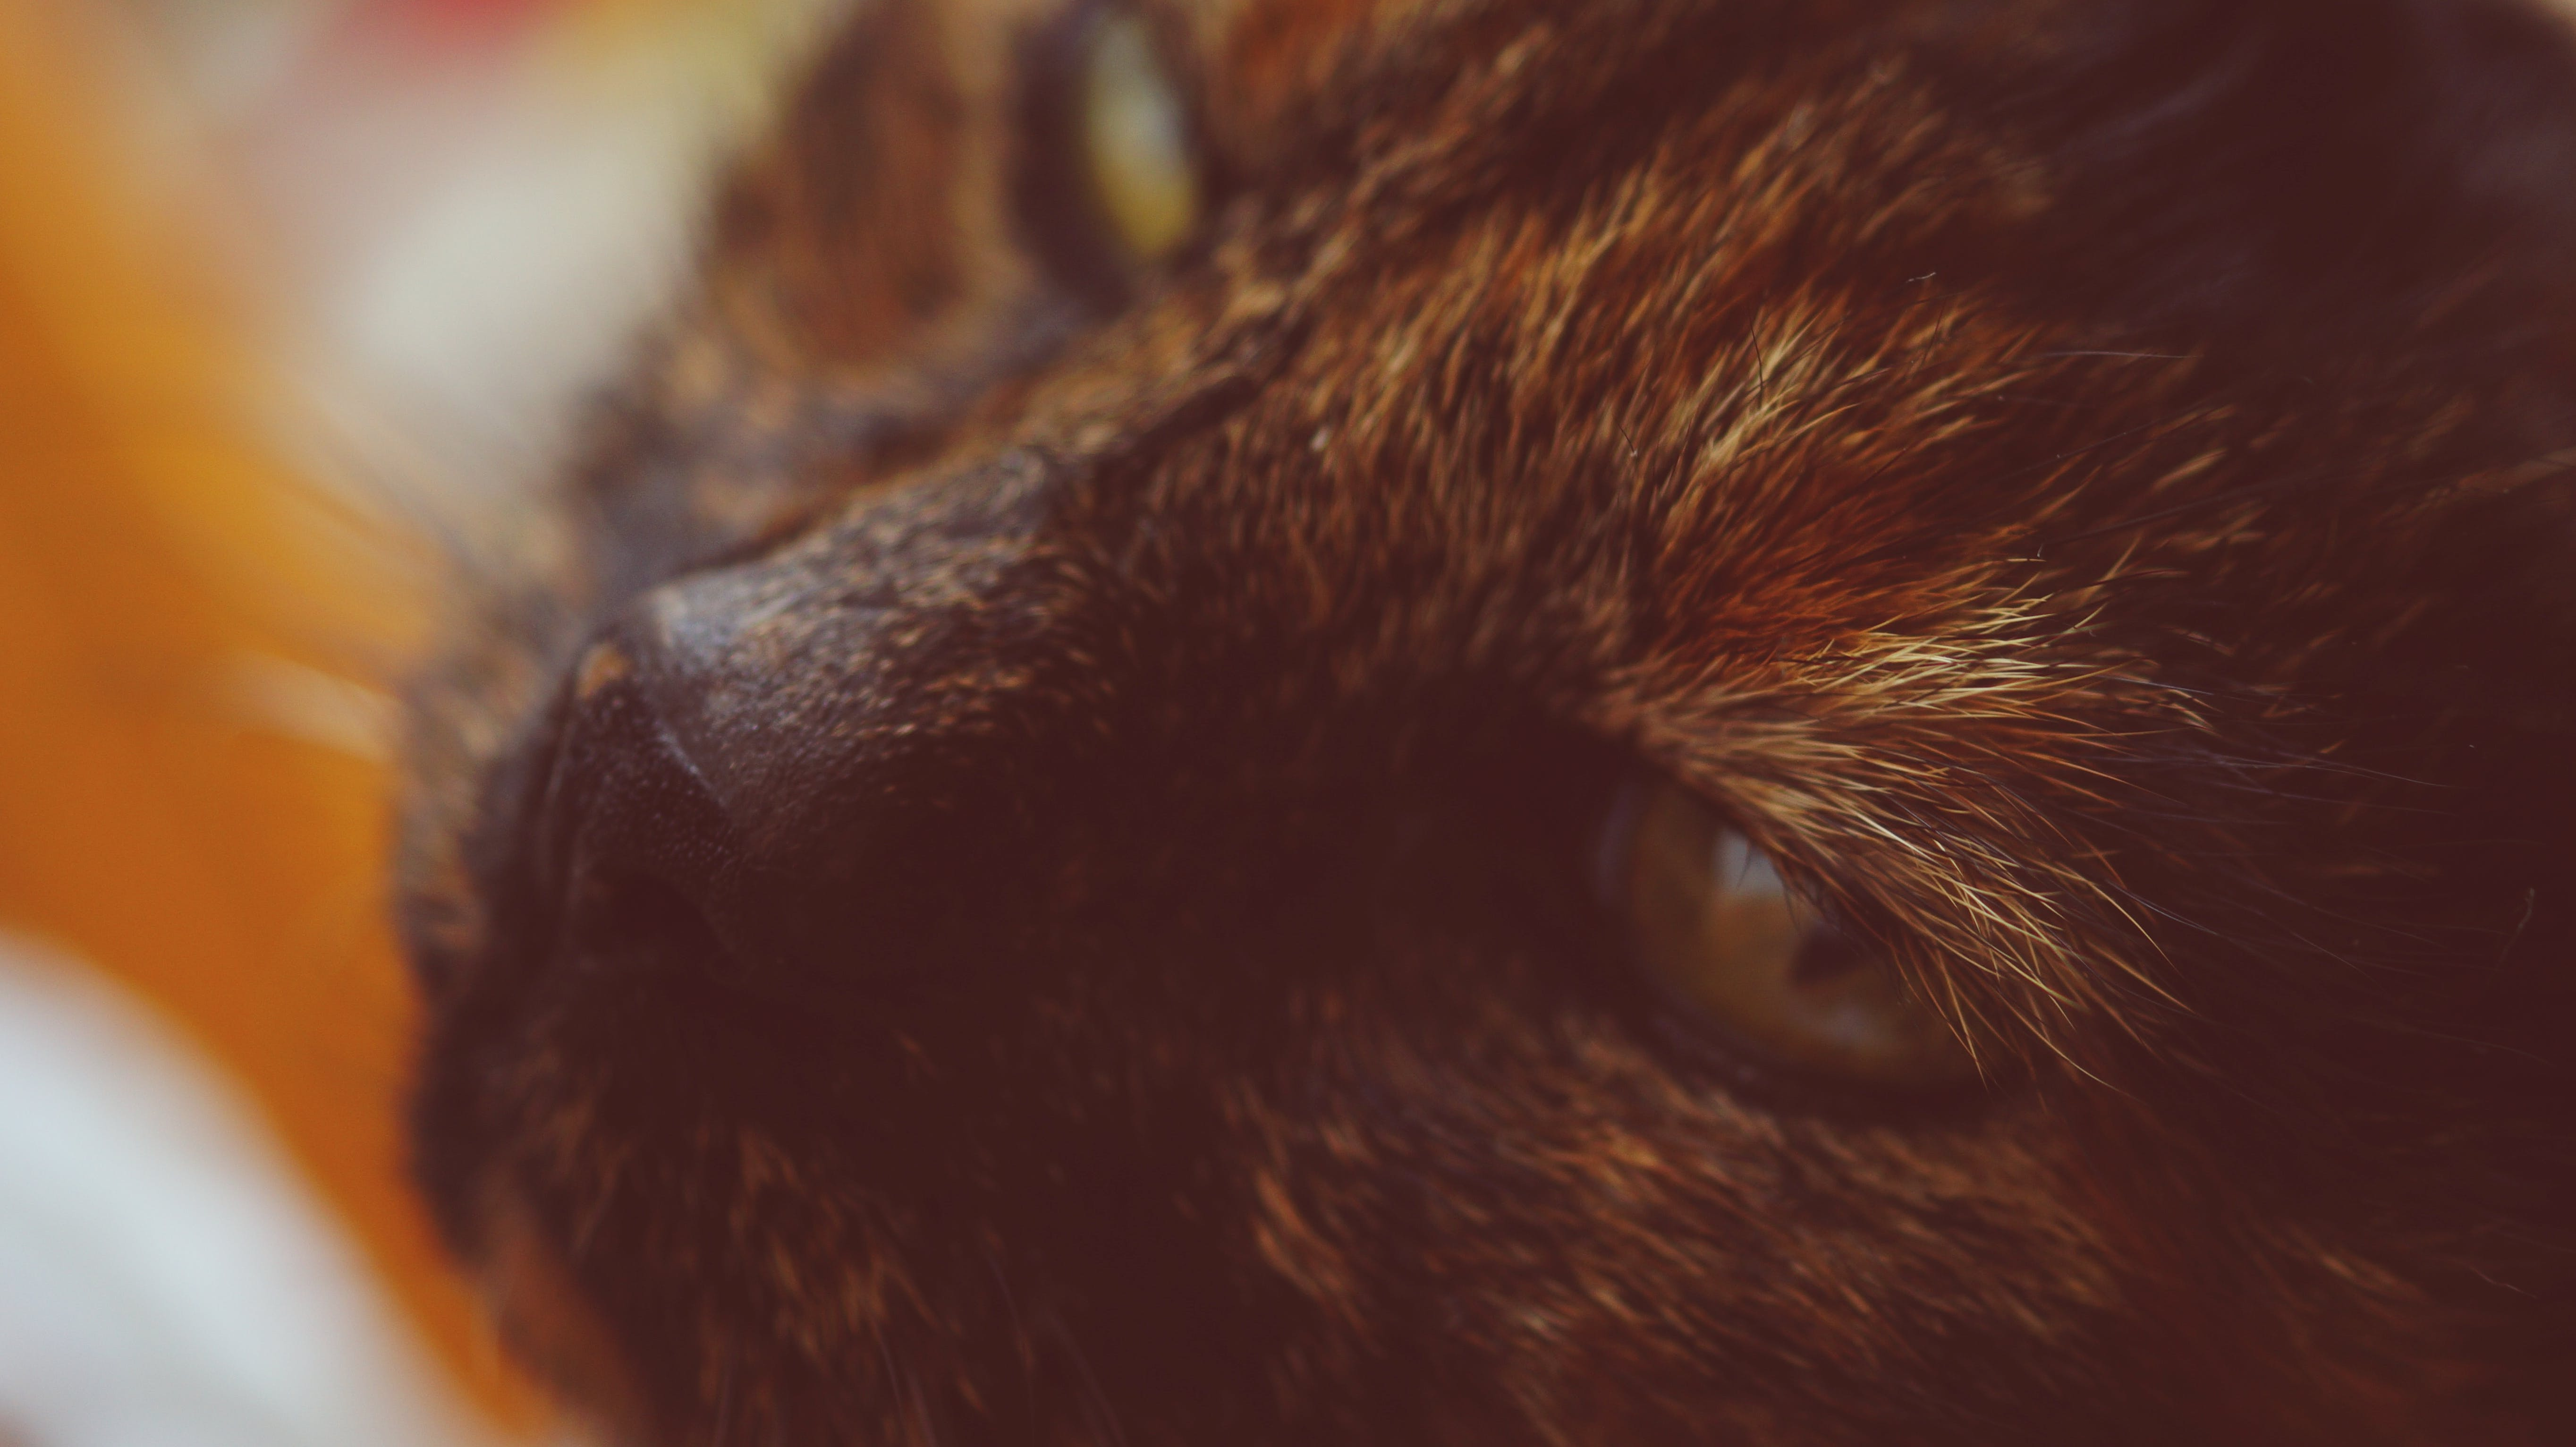 Free stock photo of close-up view, cat